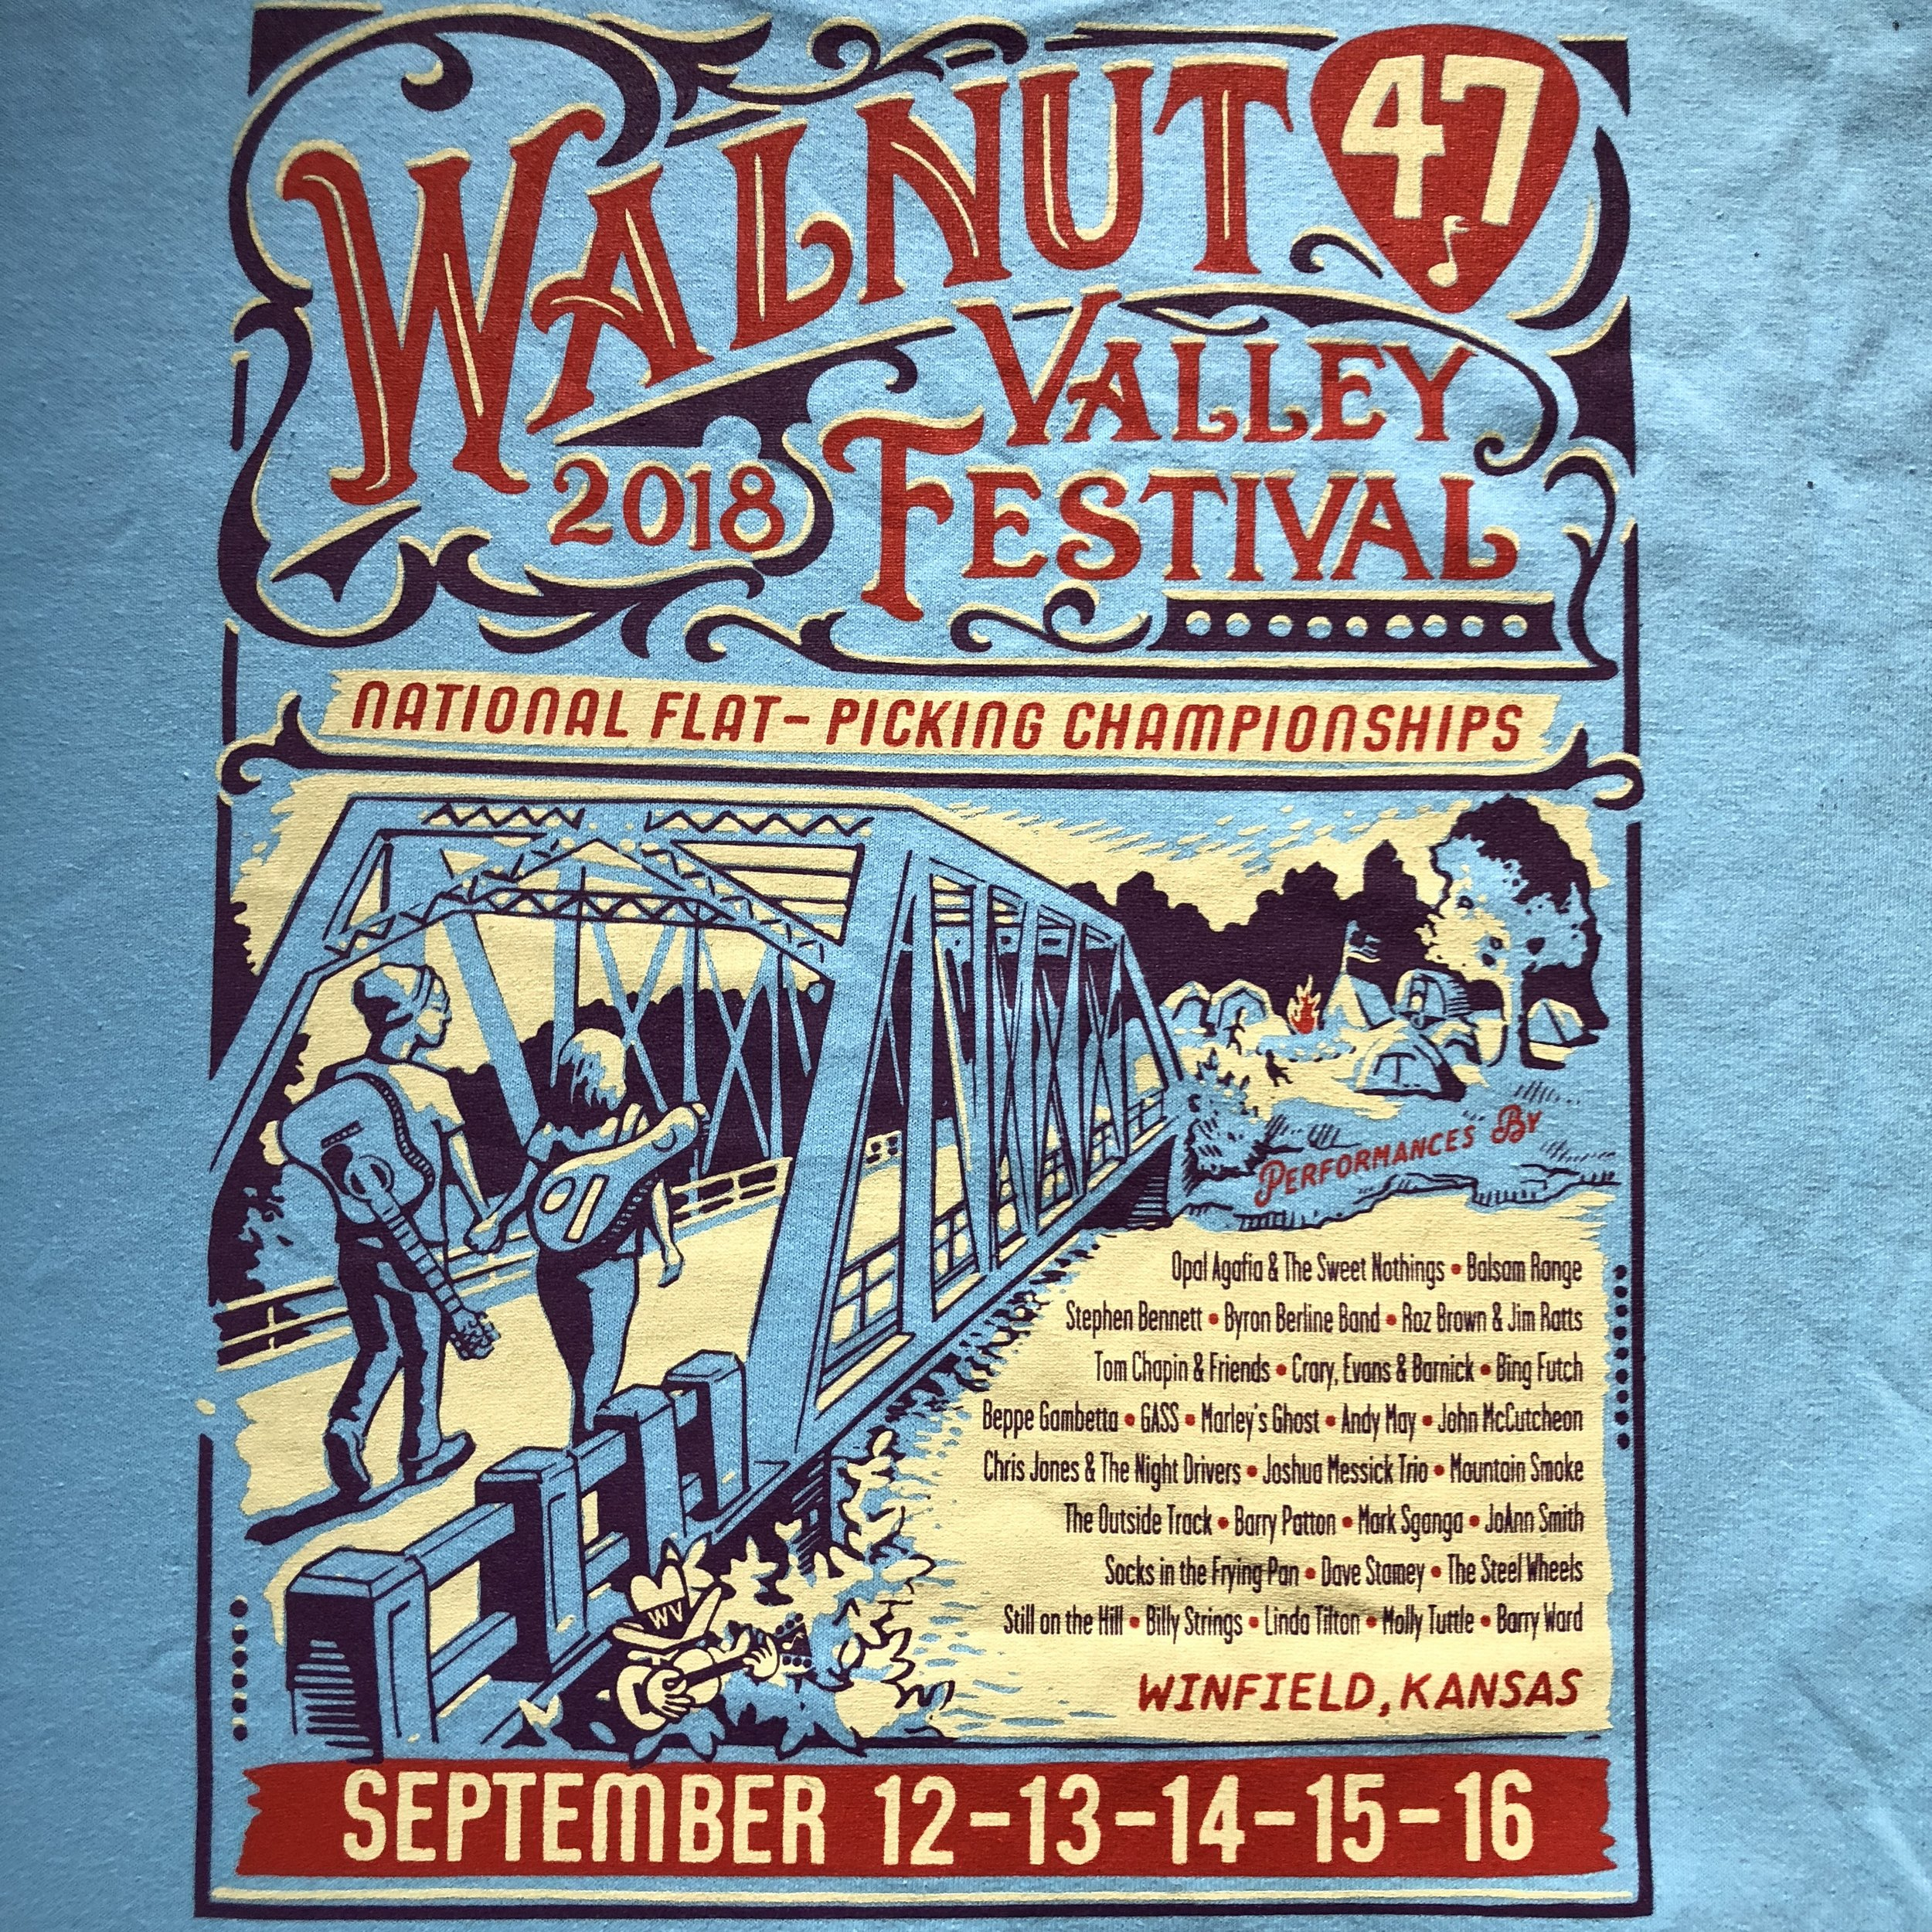 This year's official t-shirt with all of the featured acts on the back.